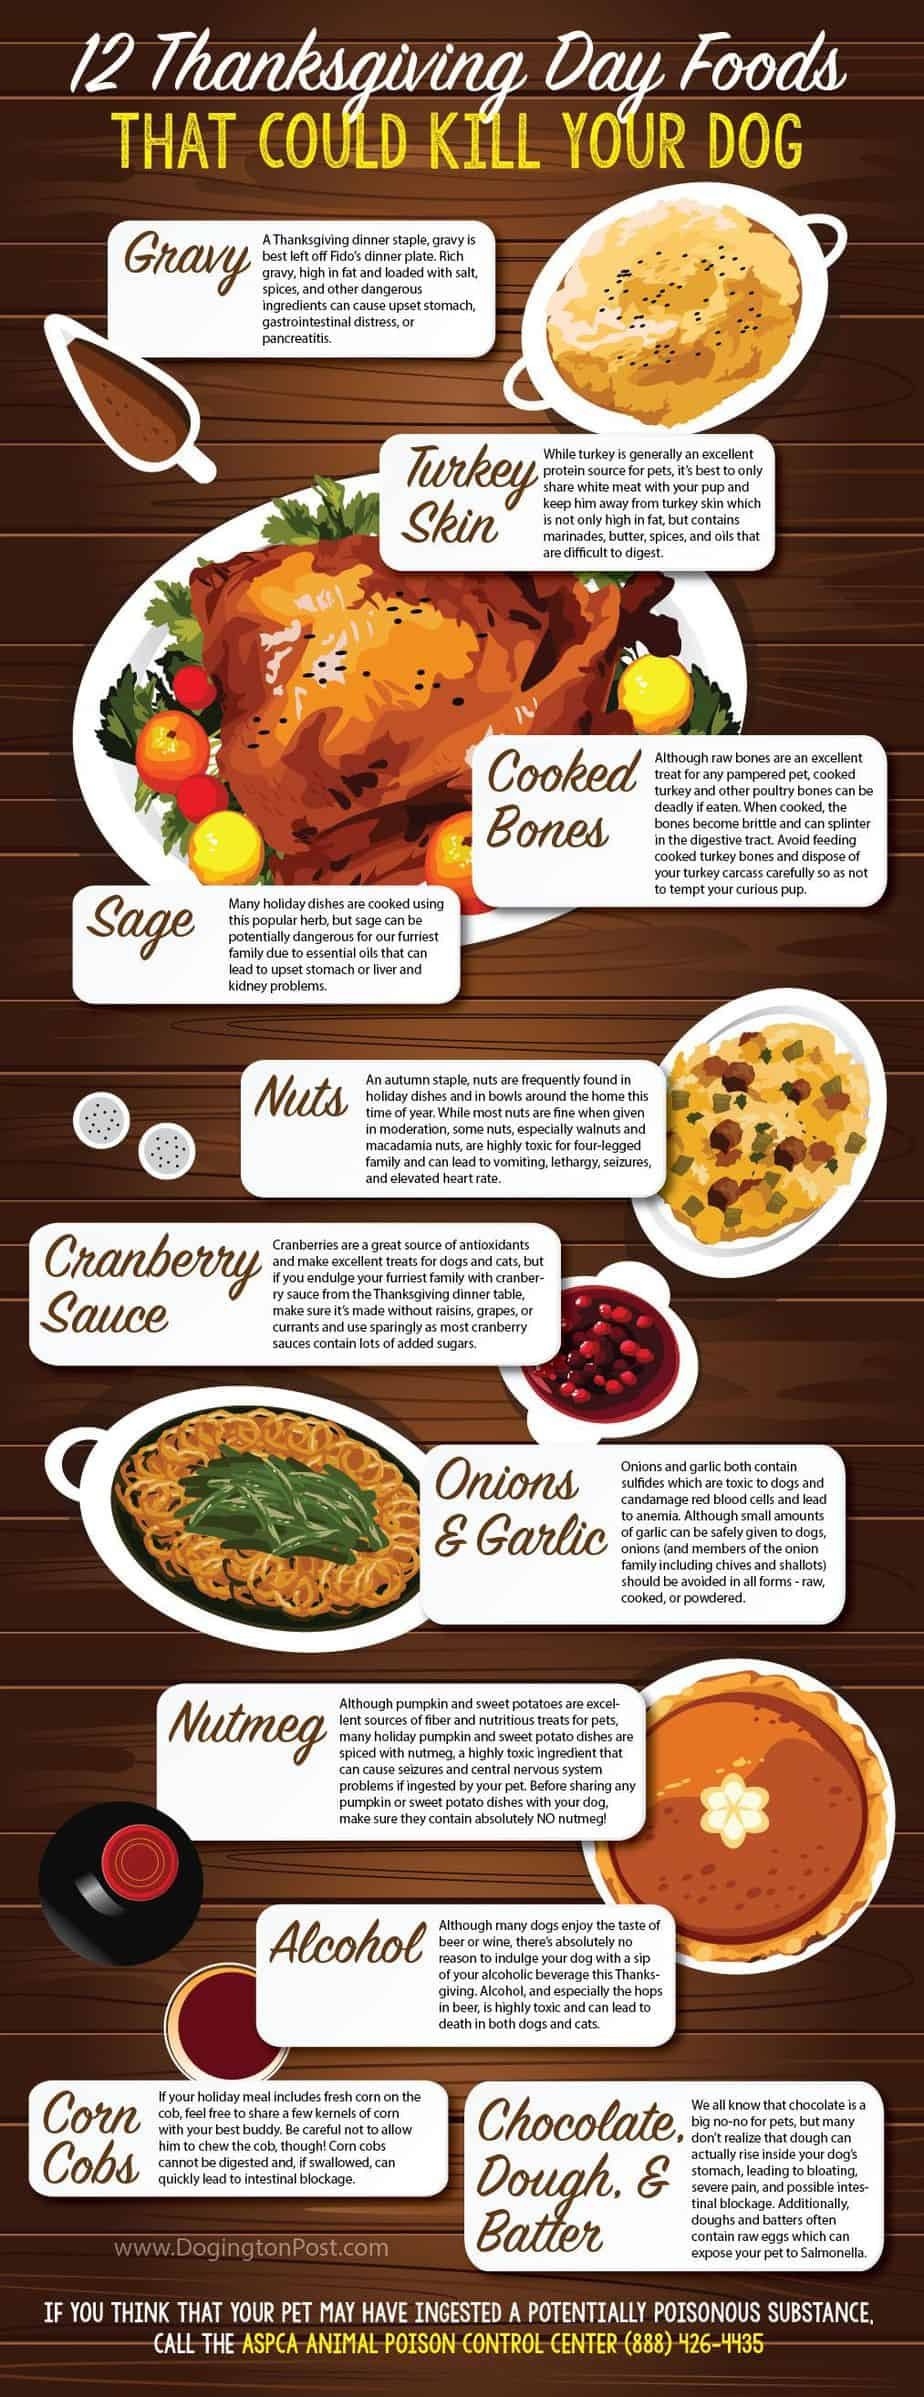 Poisonous Thanksgiving Food For Dogs